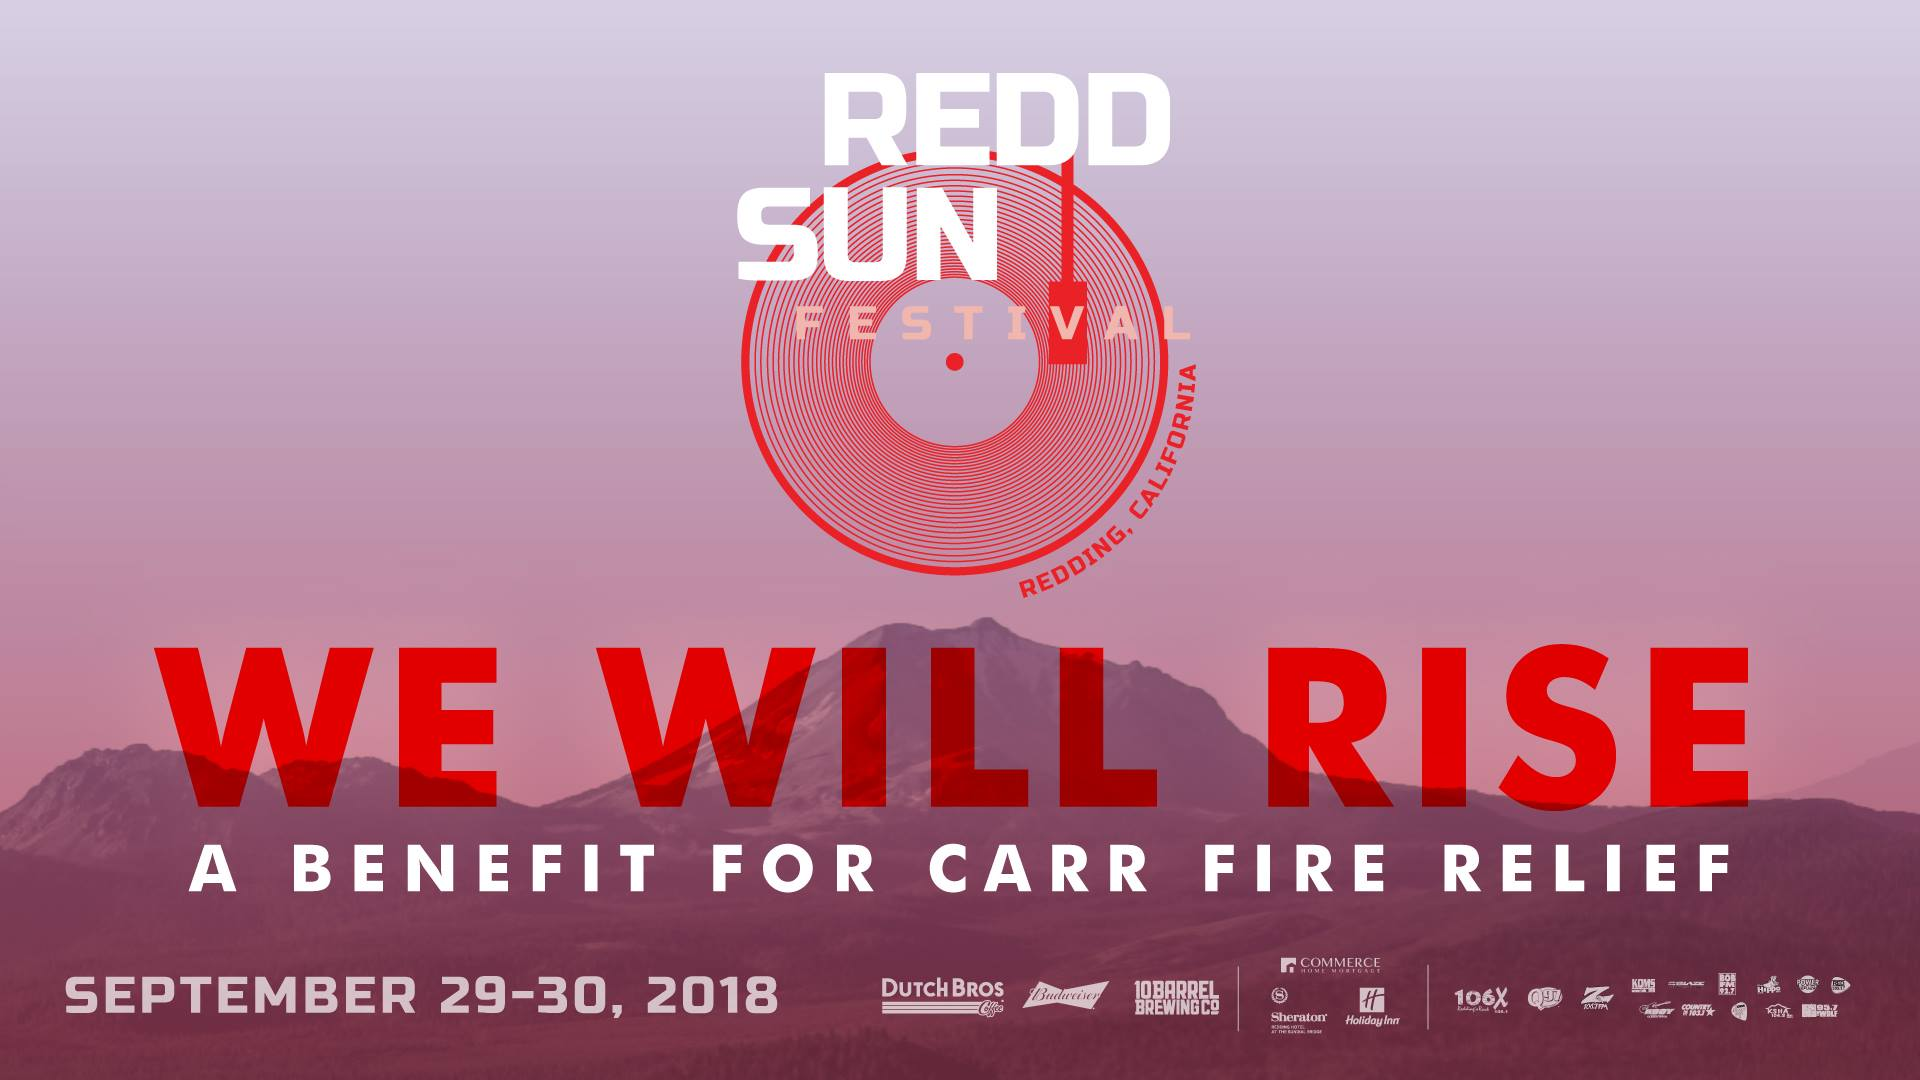 Redd Sun Festival - a Benefit for Carr Fire Relief ⋆ Redding ...